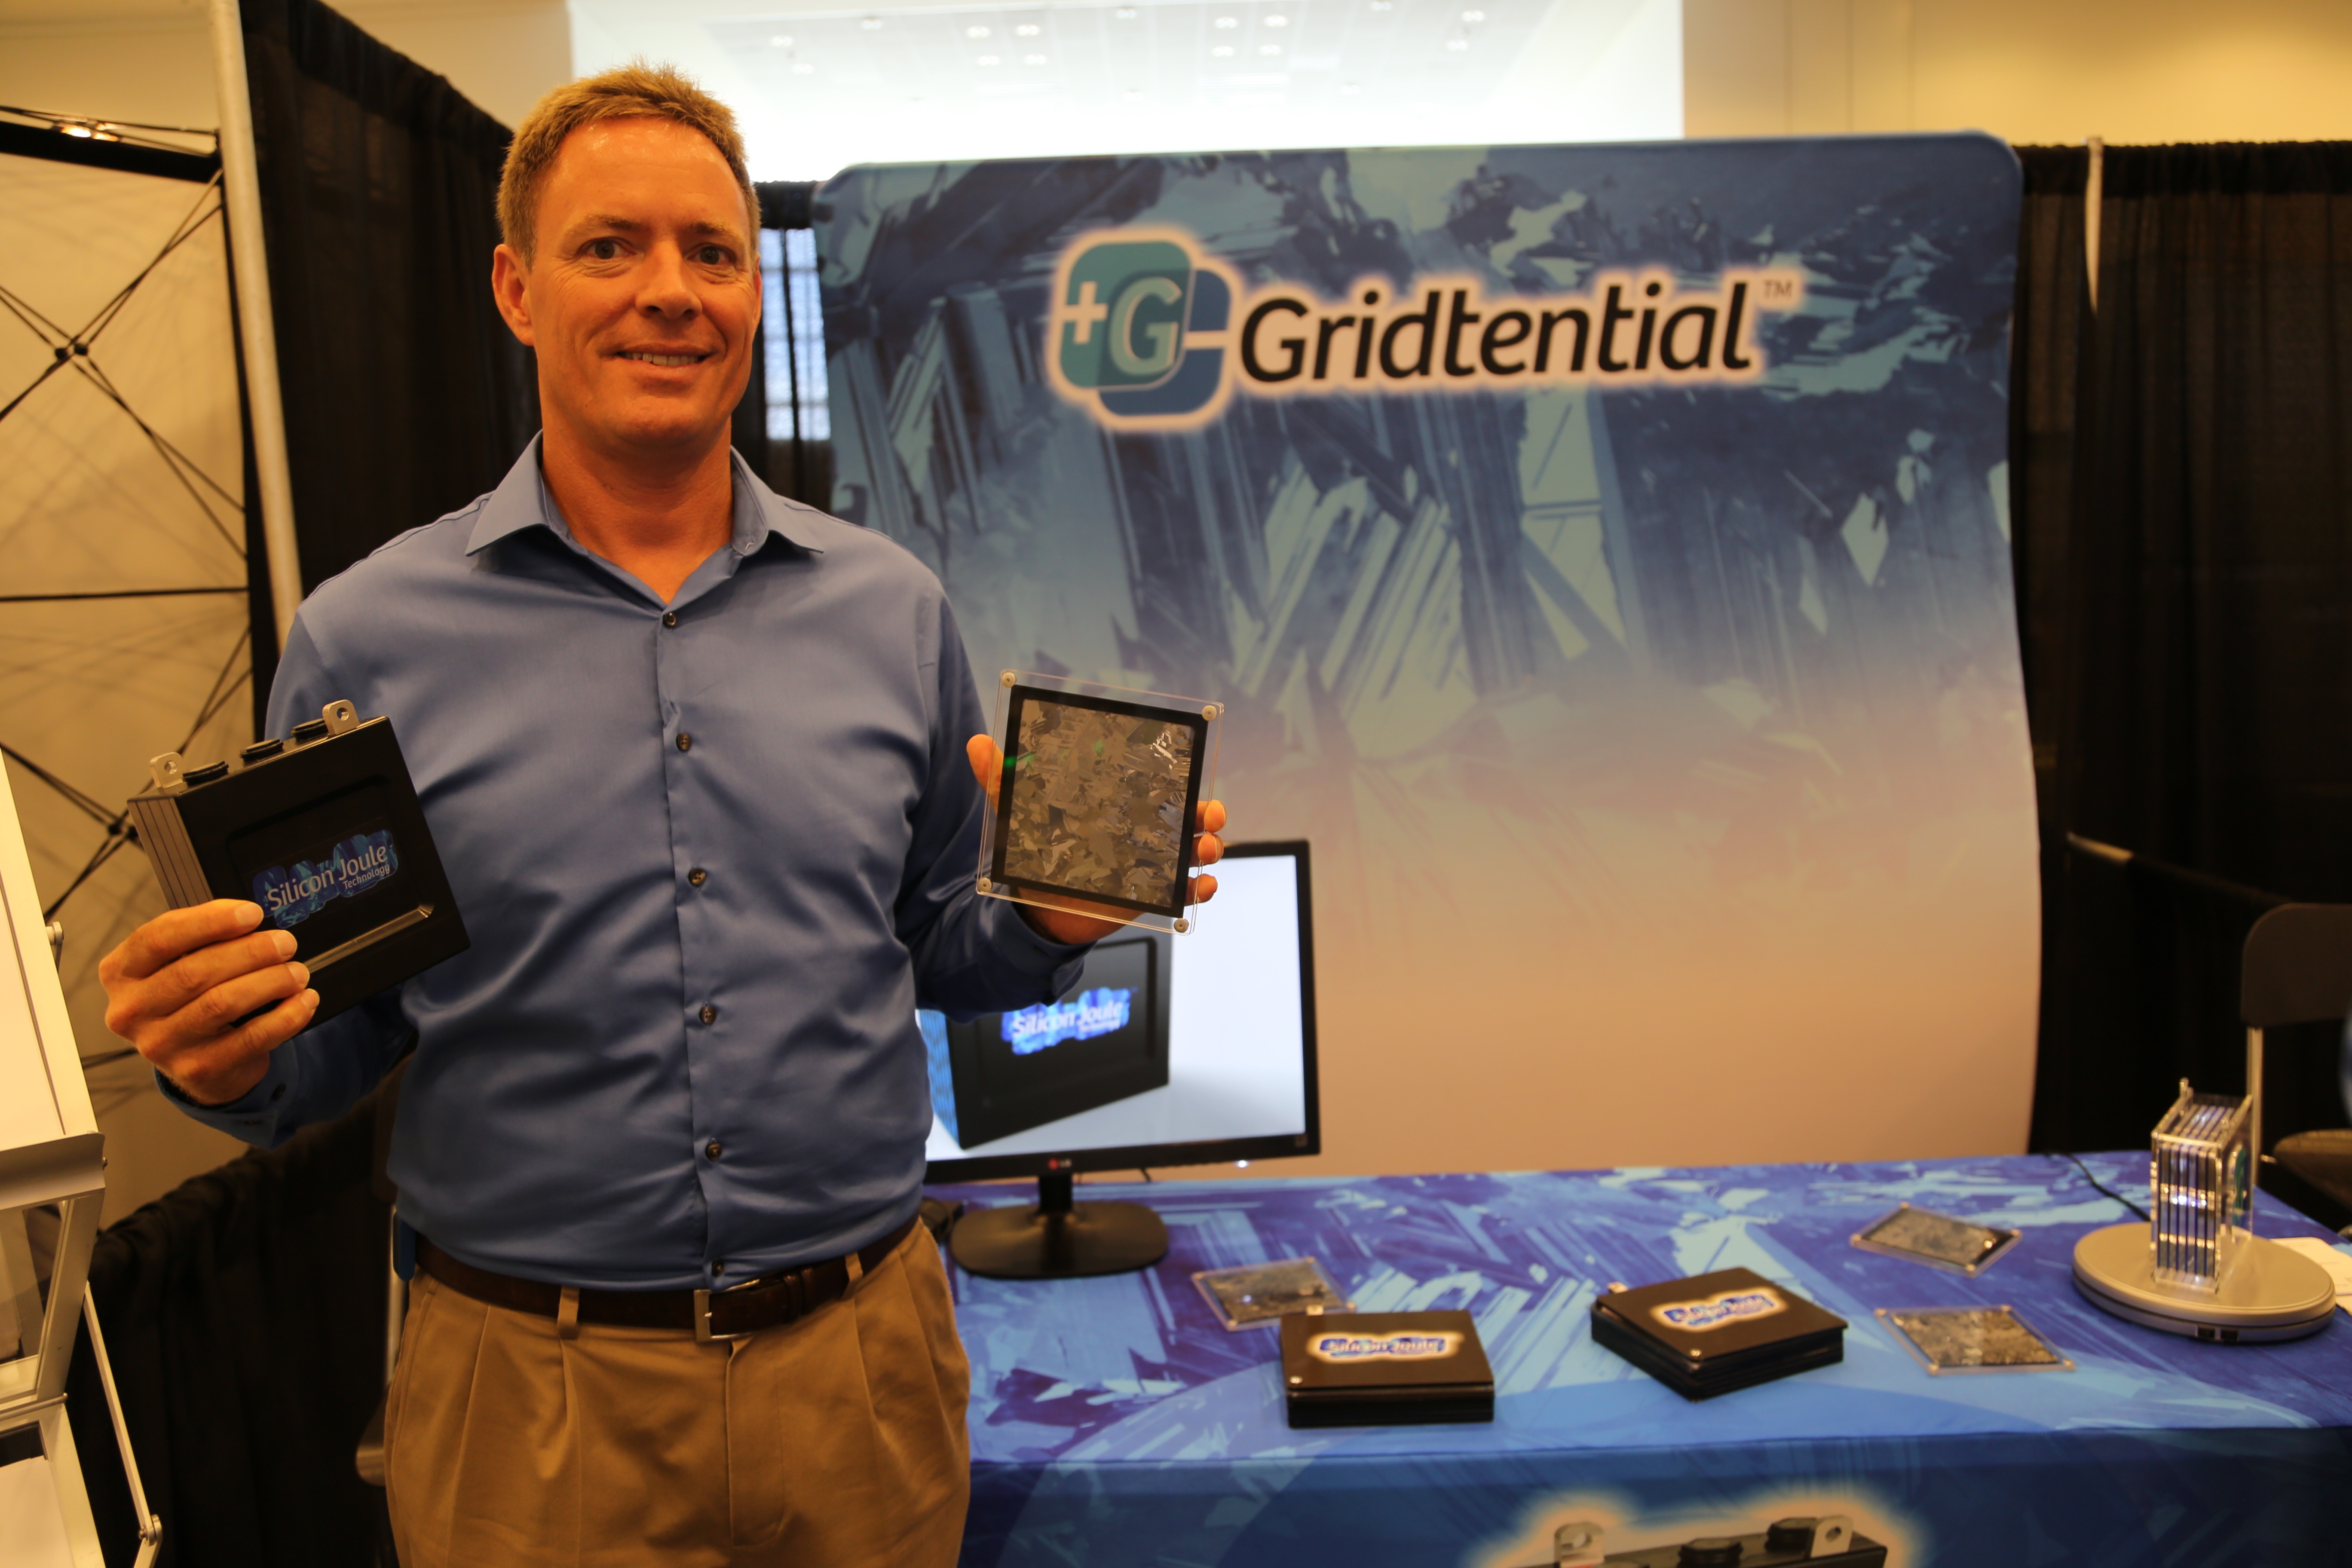 The CEO of startup Gridtential, Christiaan Beekhuis, holds an early prototype of the company's next-gen lead acid battery at Intersolar 2015.